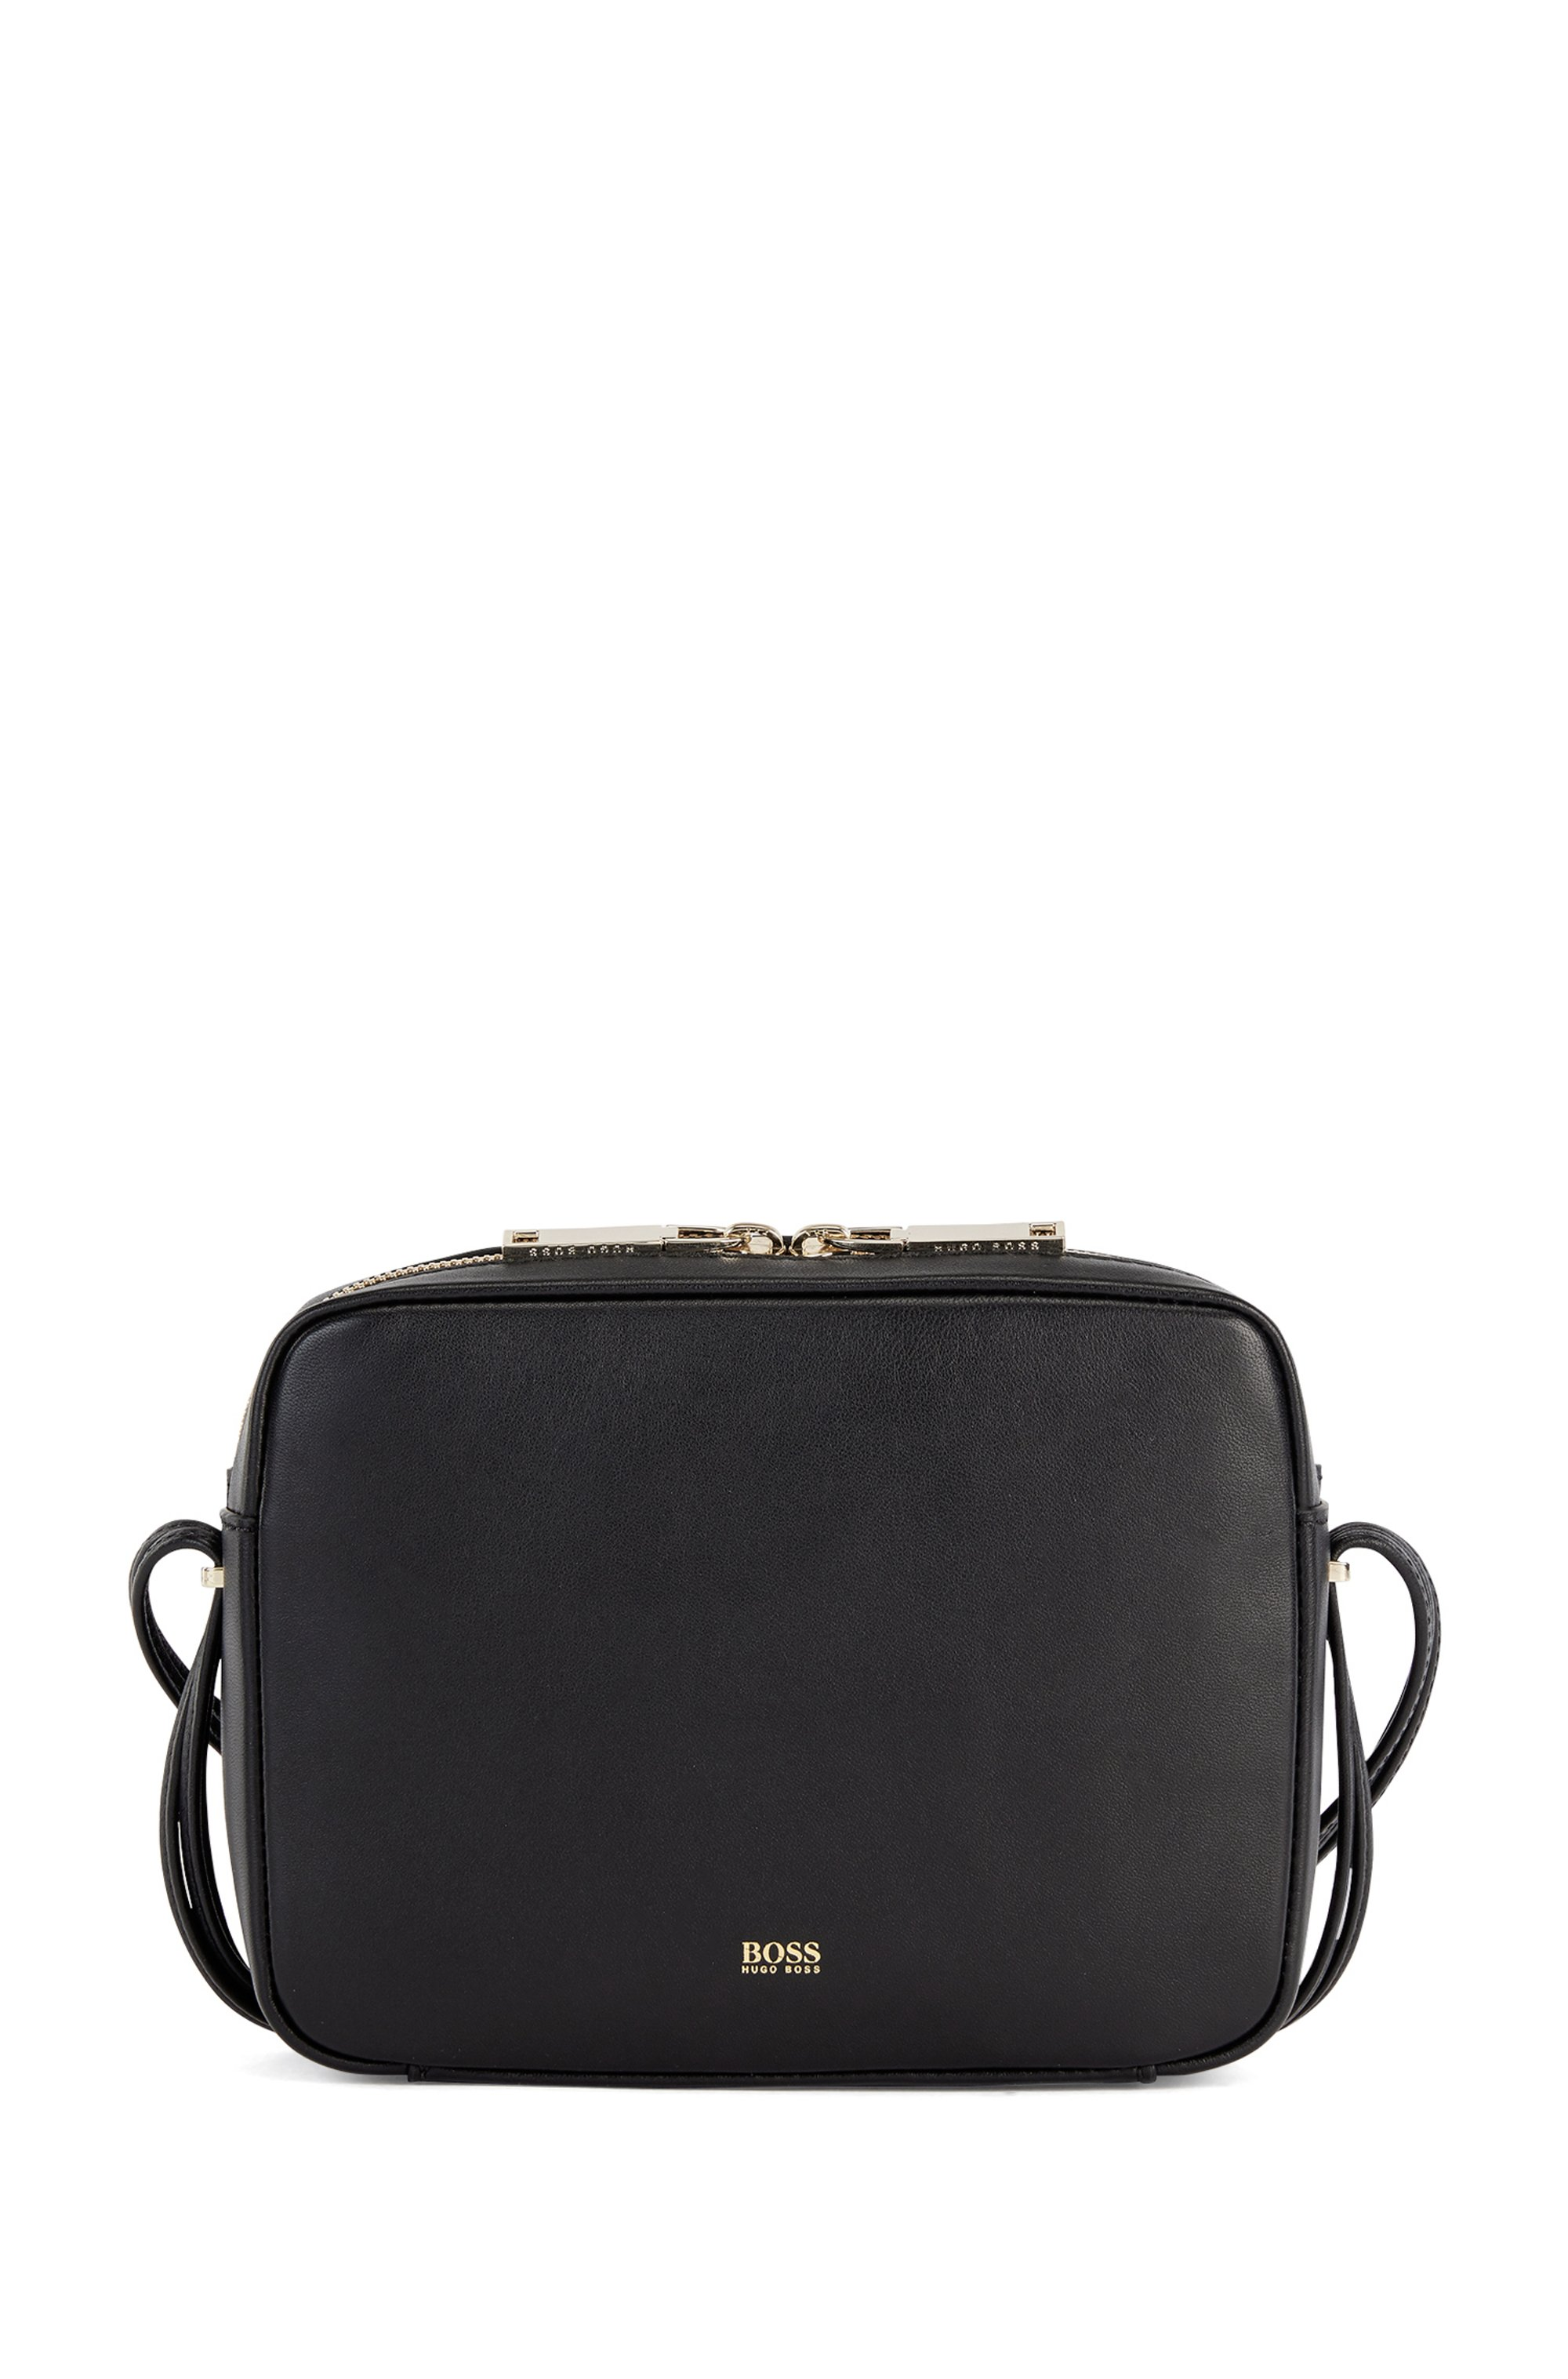 Nappa-leather crossbody bag with hardware-tipped straps, Black